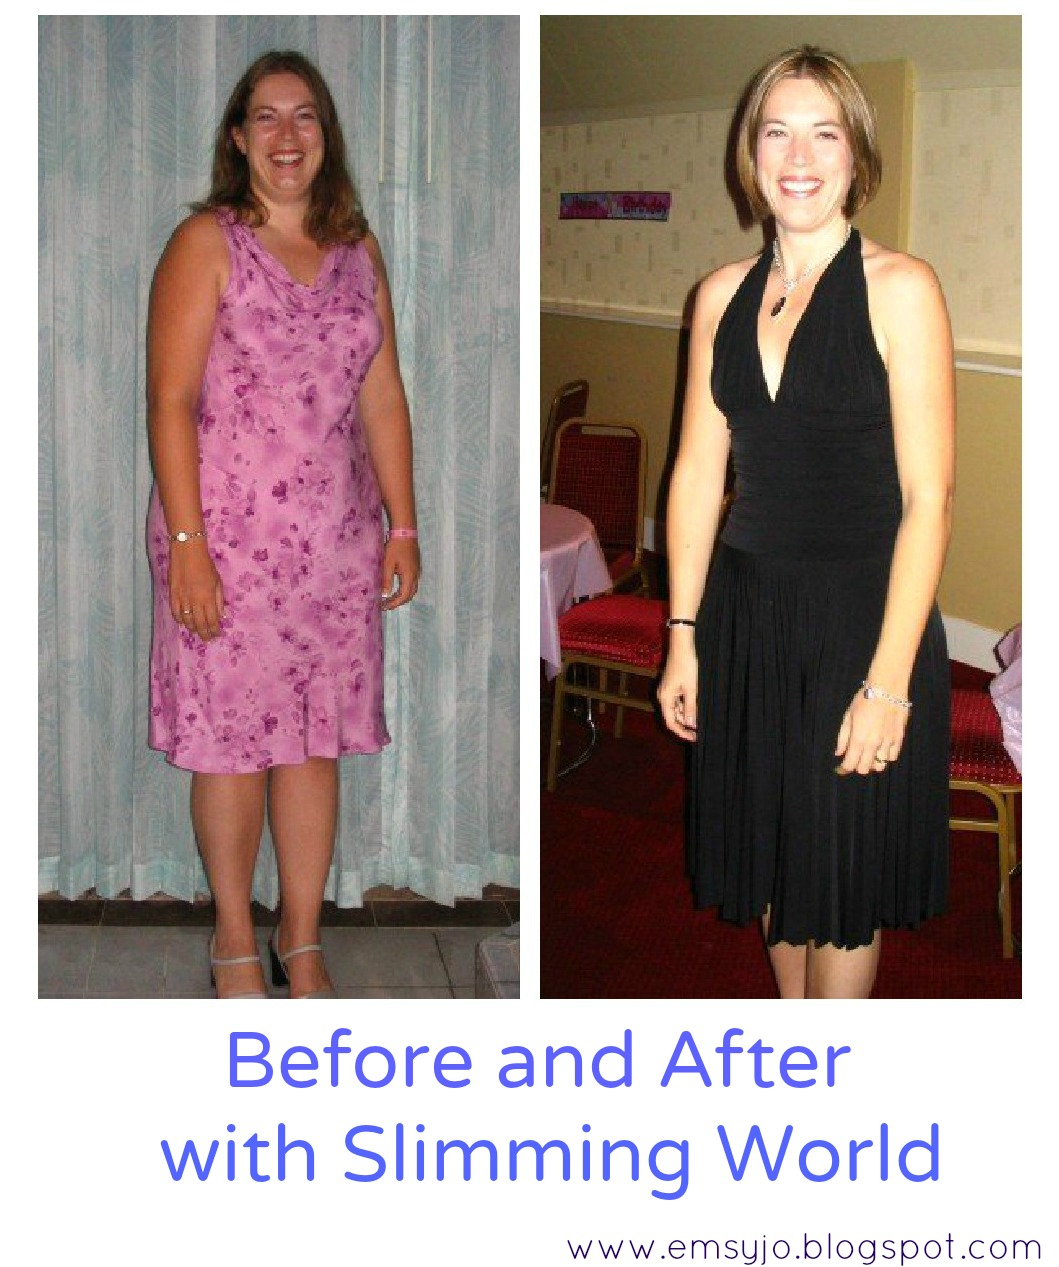 1000 Images About Slimming World Before And After On